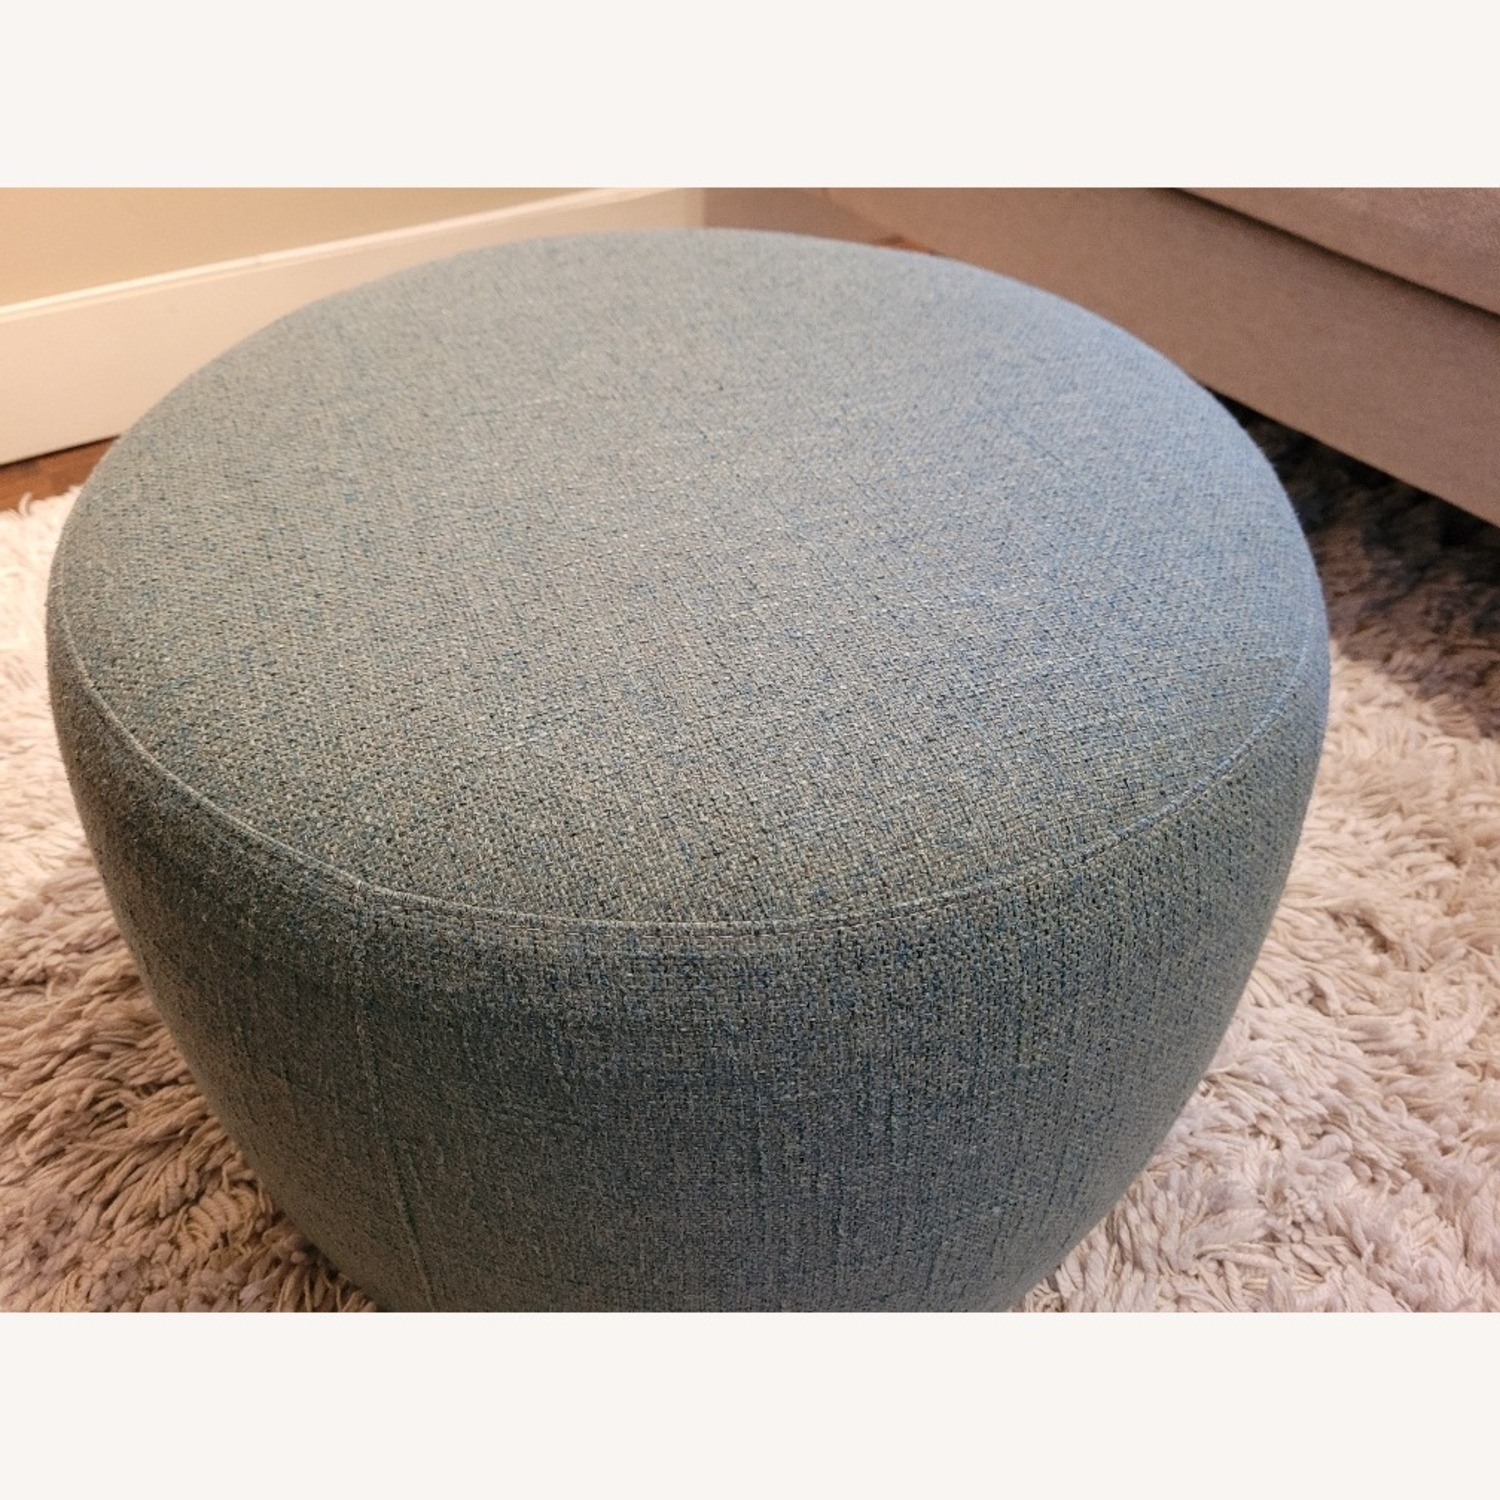 Room & Board Lind Round Ottoman - image-2